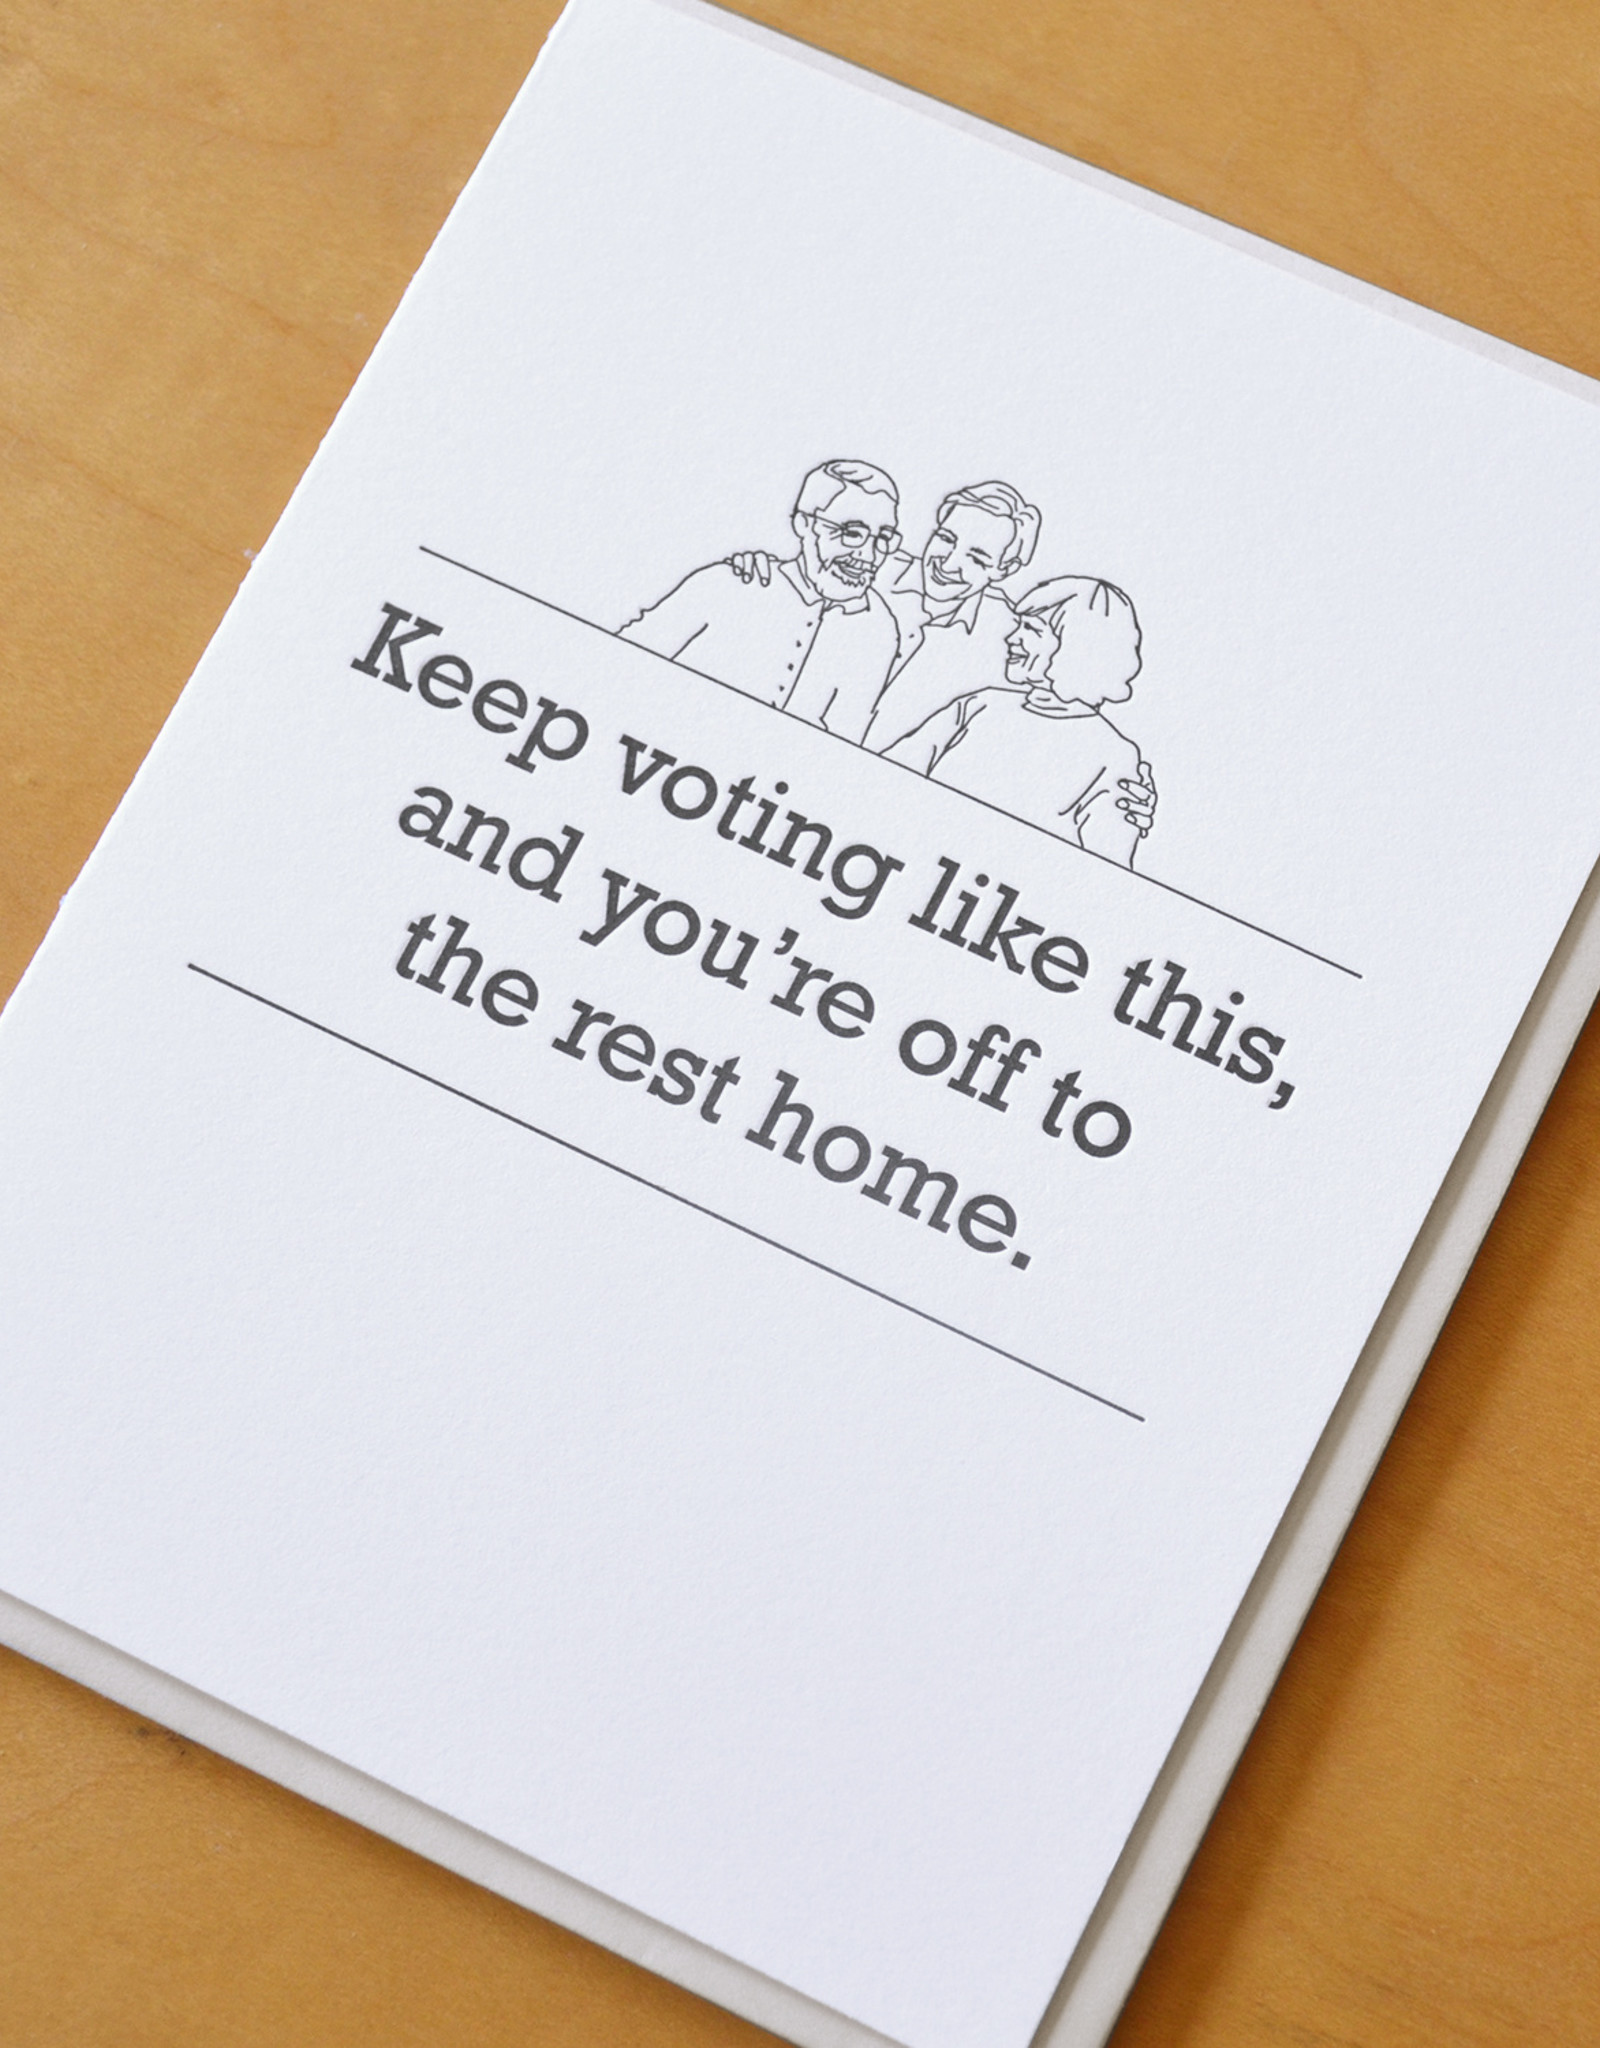 Keep Voting Like This and You're Off to the Rest Home Greeting Card